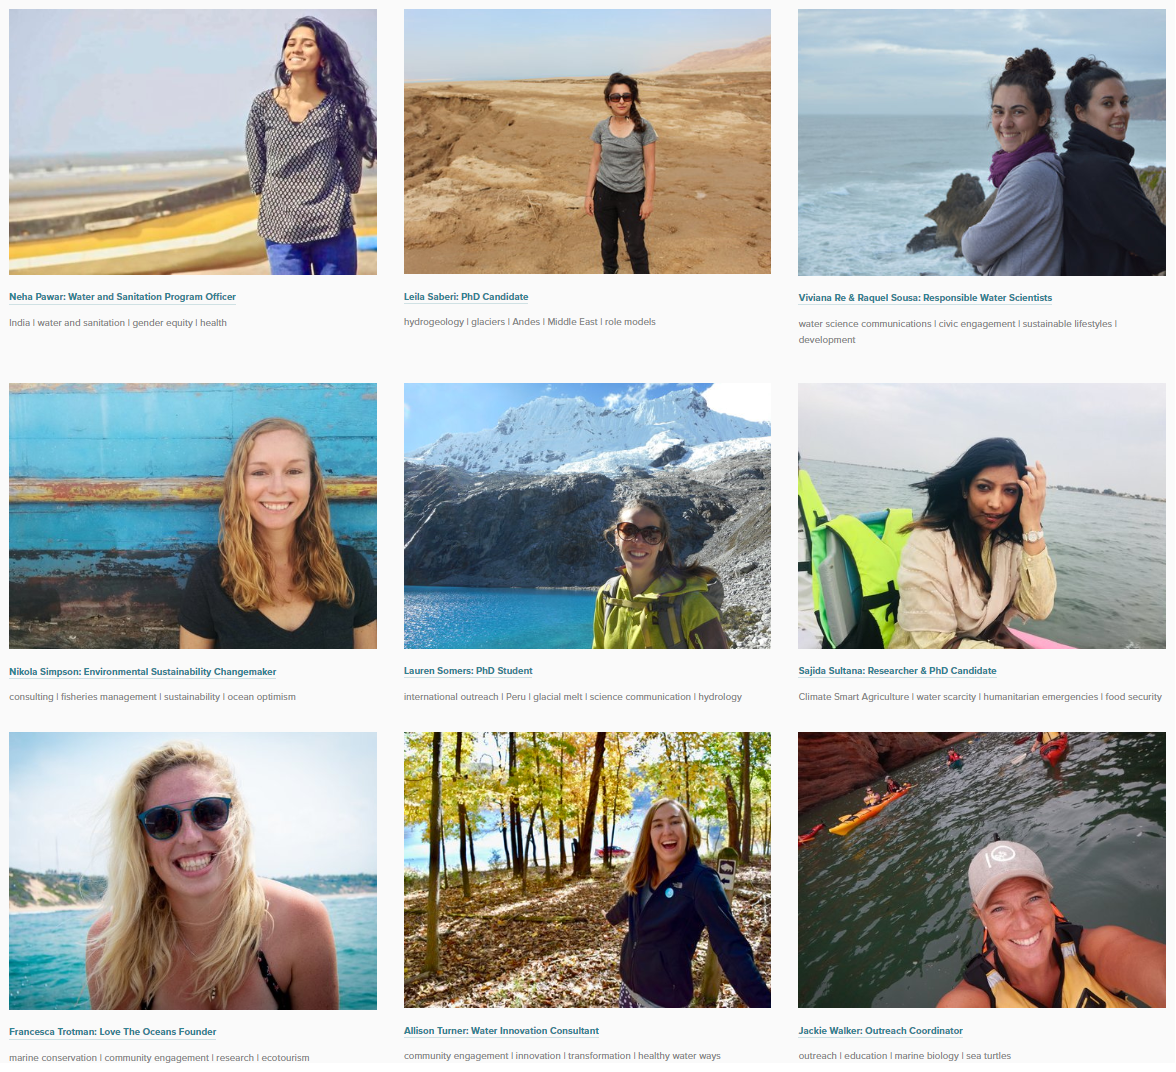 Be profiled. - Our Women in Water Profiles dig into the biographies and ambitions of women who work, volunteer, and play in all aspects of the water sector. Sound like you? Get in touch!